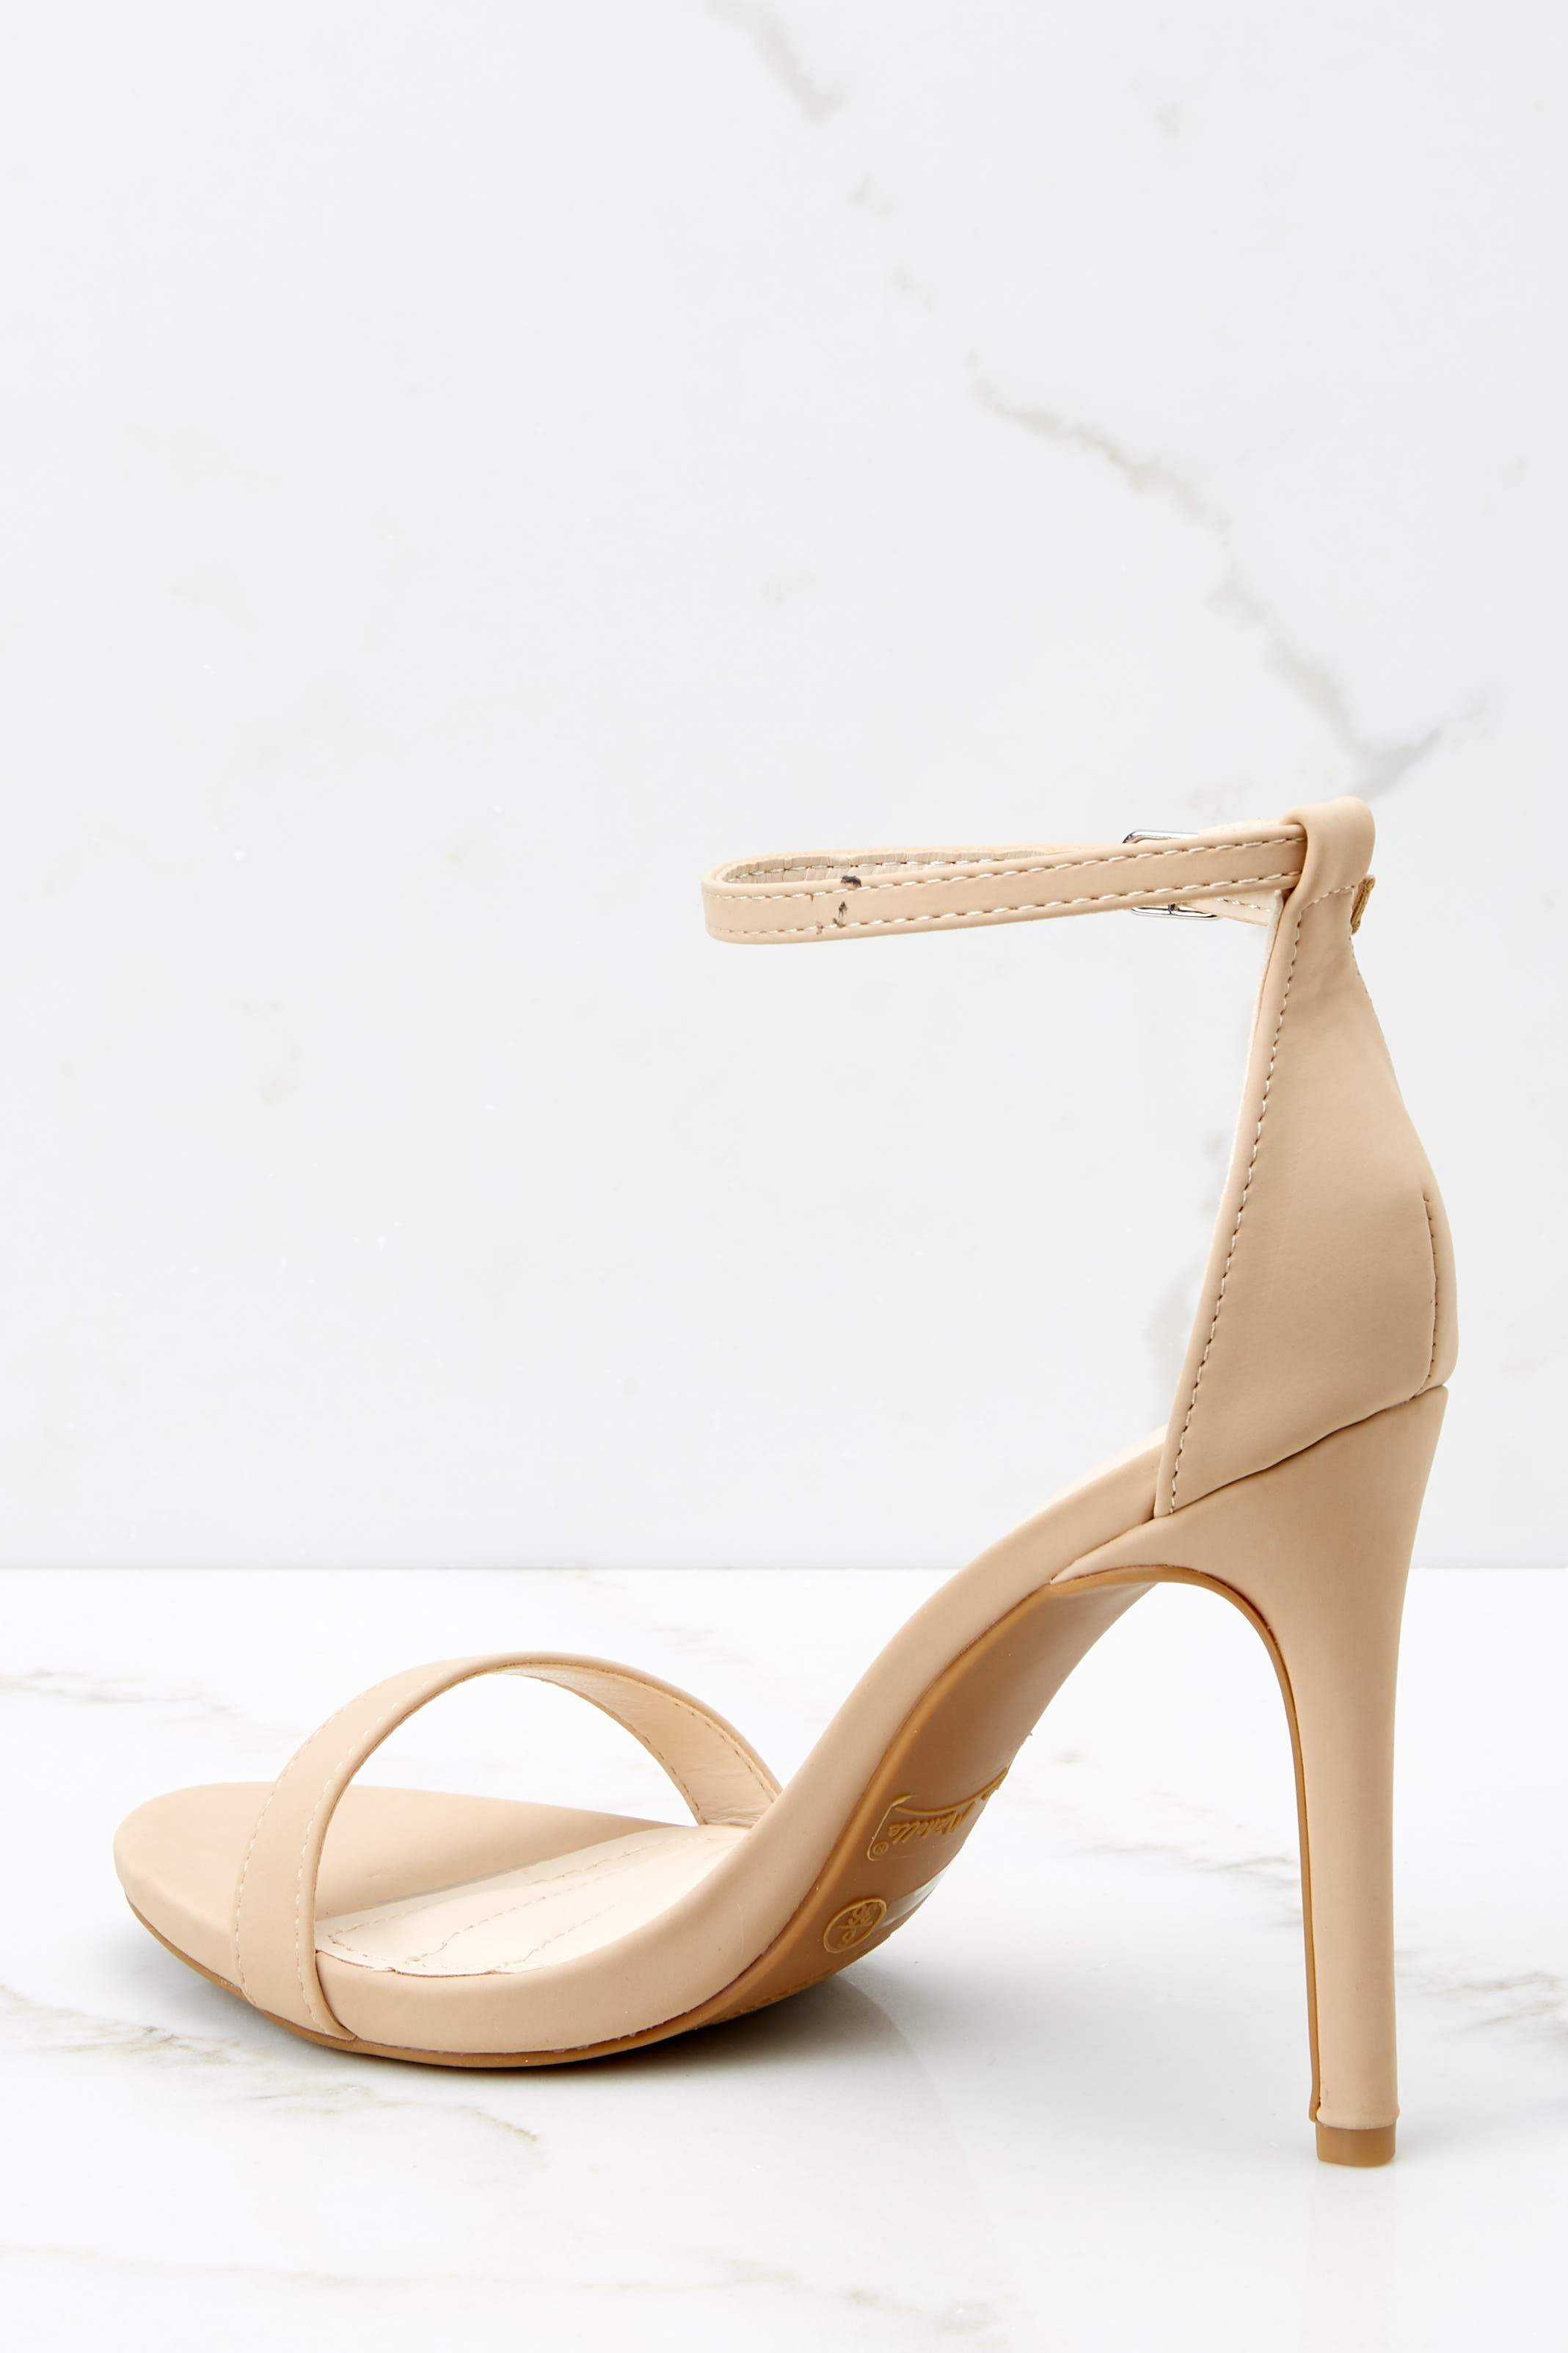 4 It's Your Moment Nude Ankle Strap Heels at reddress.com